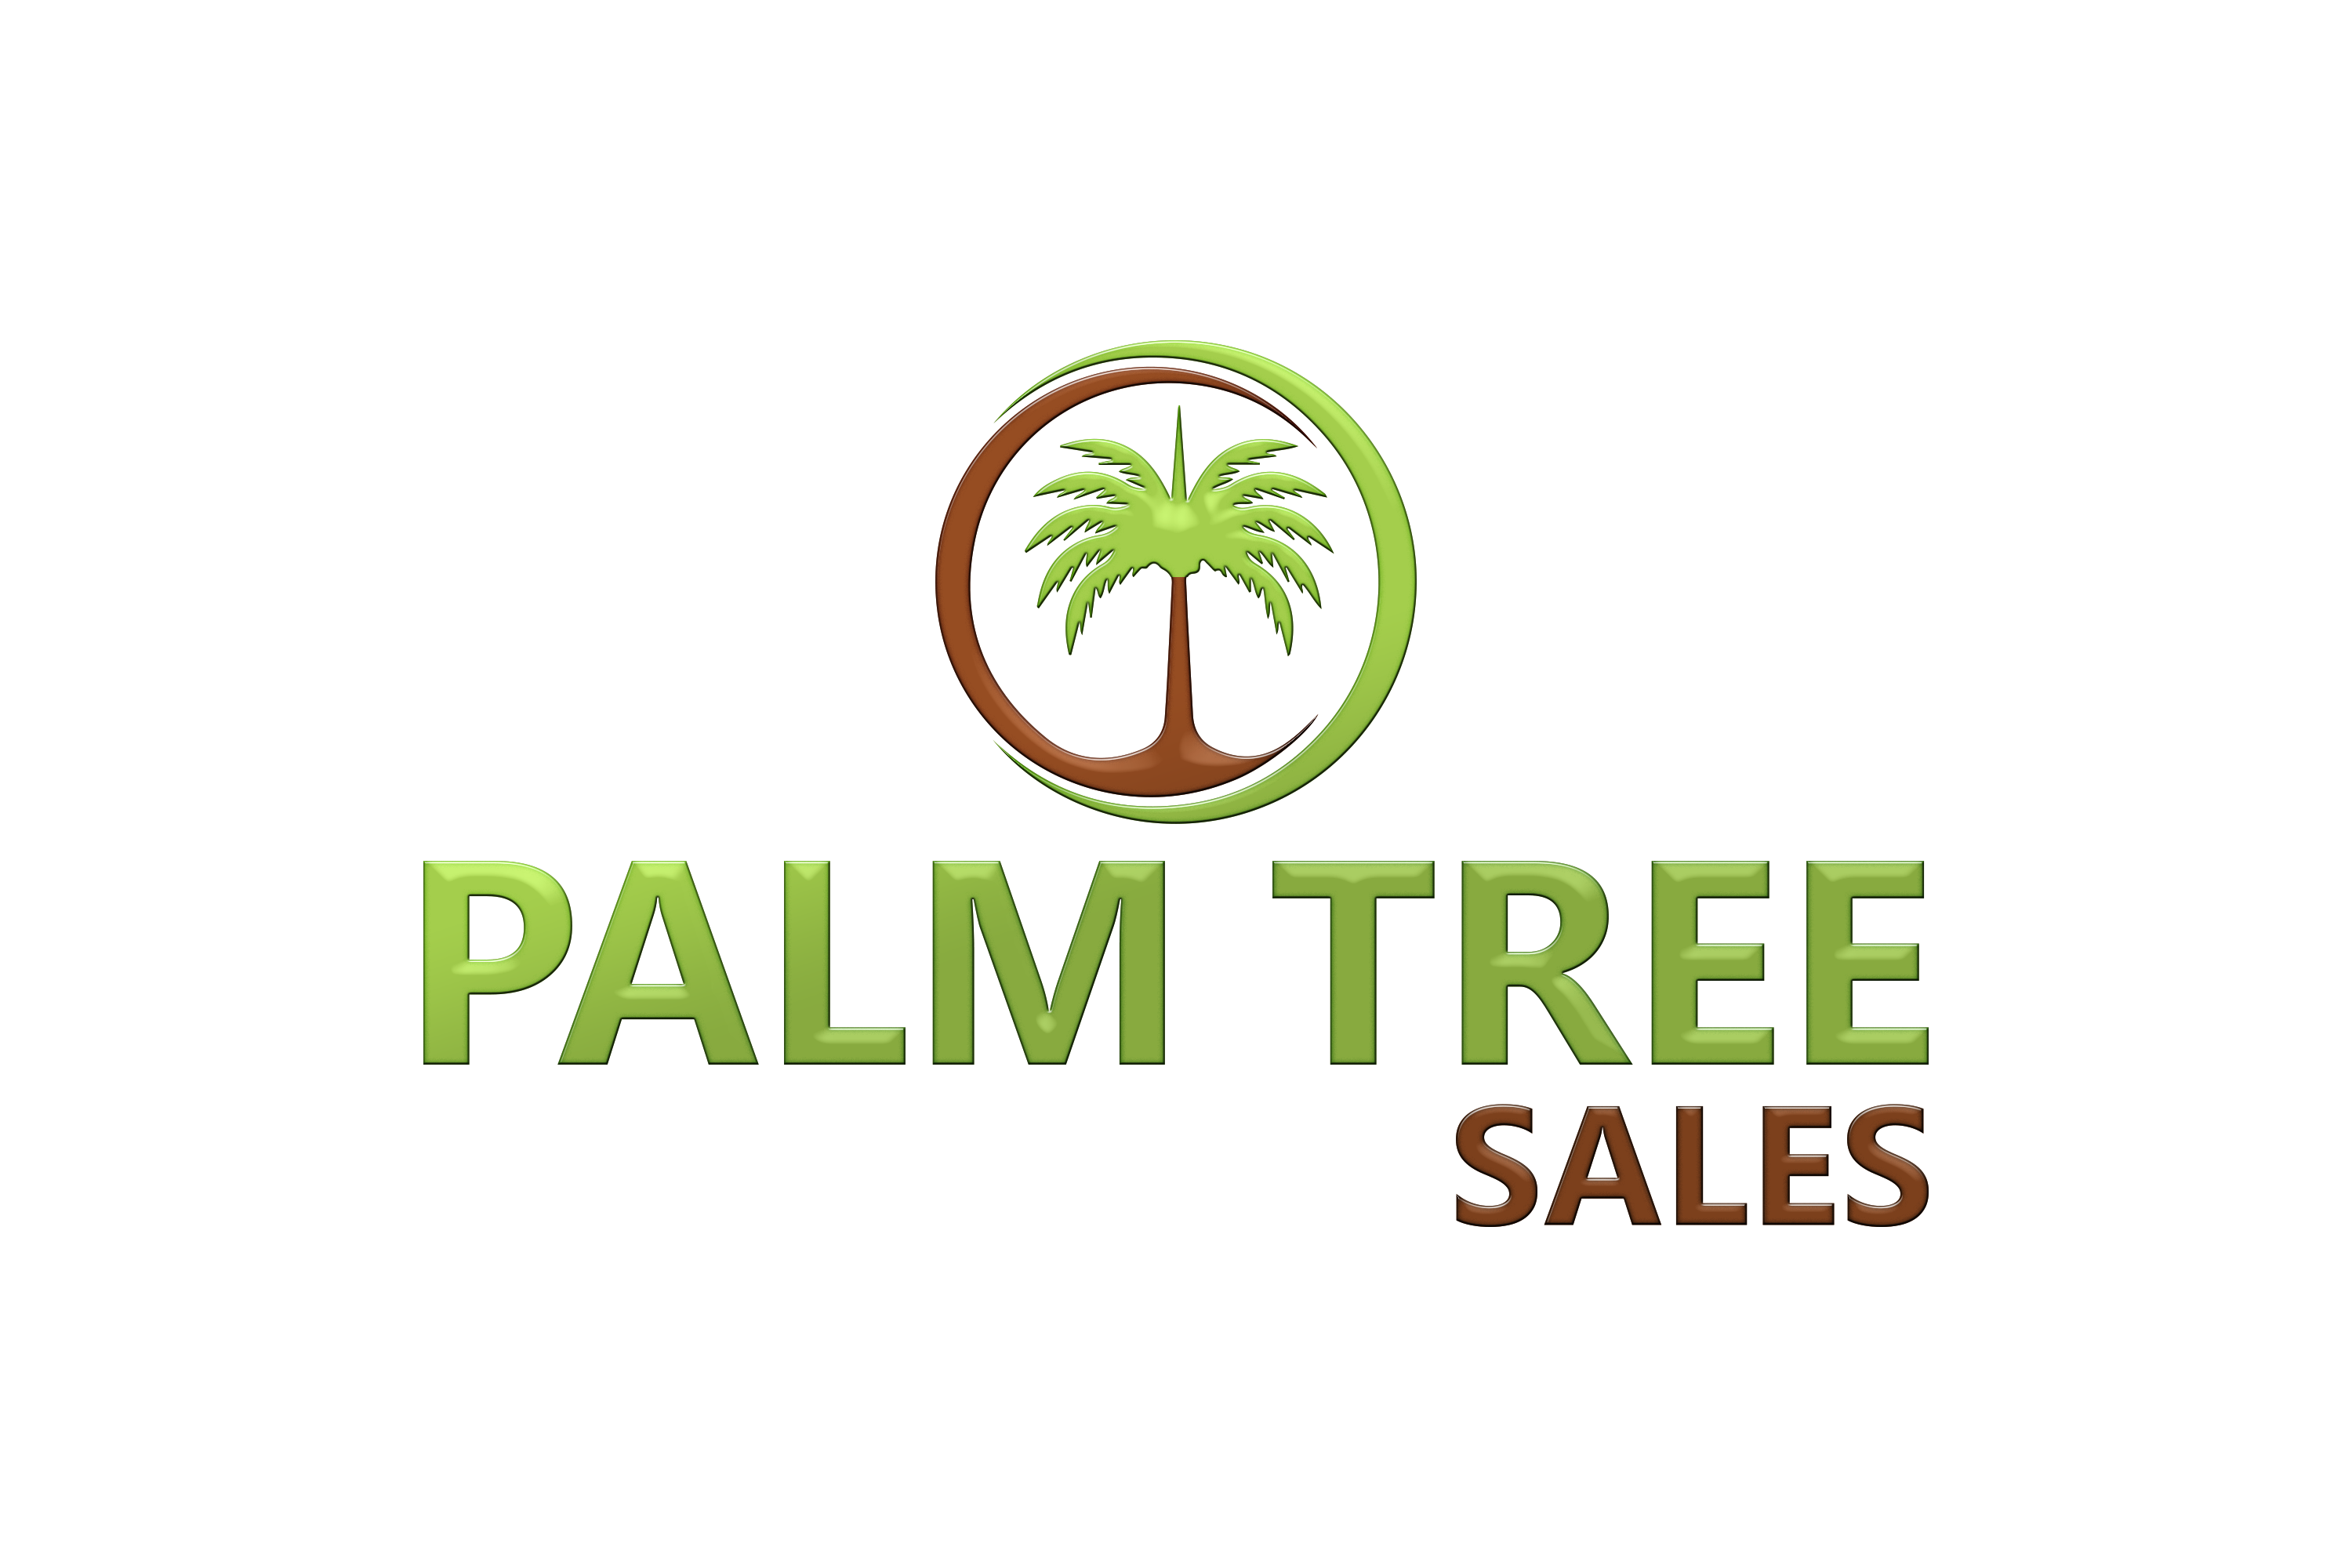 Palm Tree Sales Logo 2020